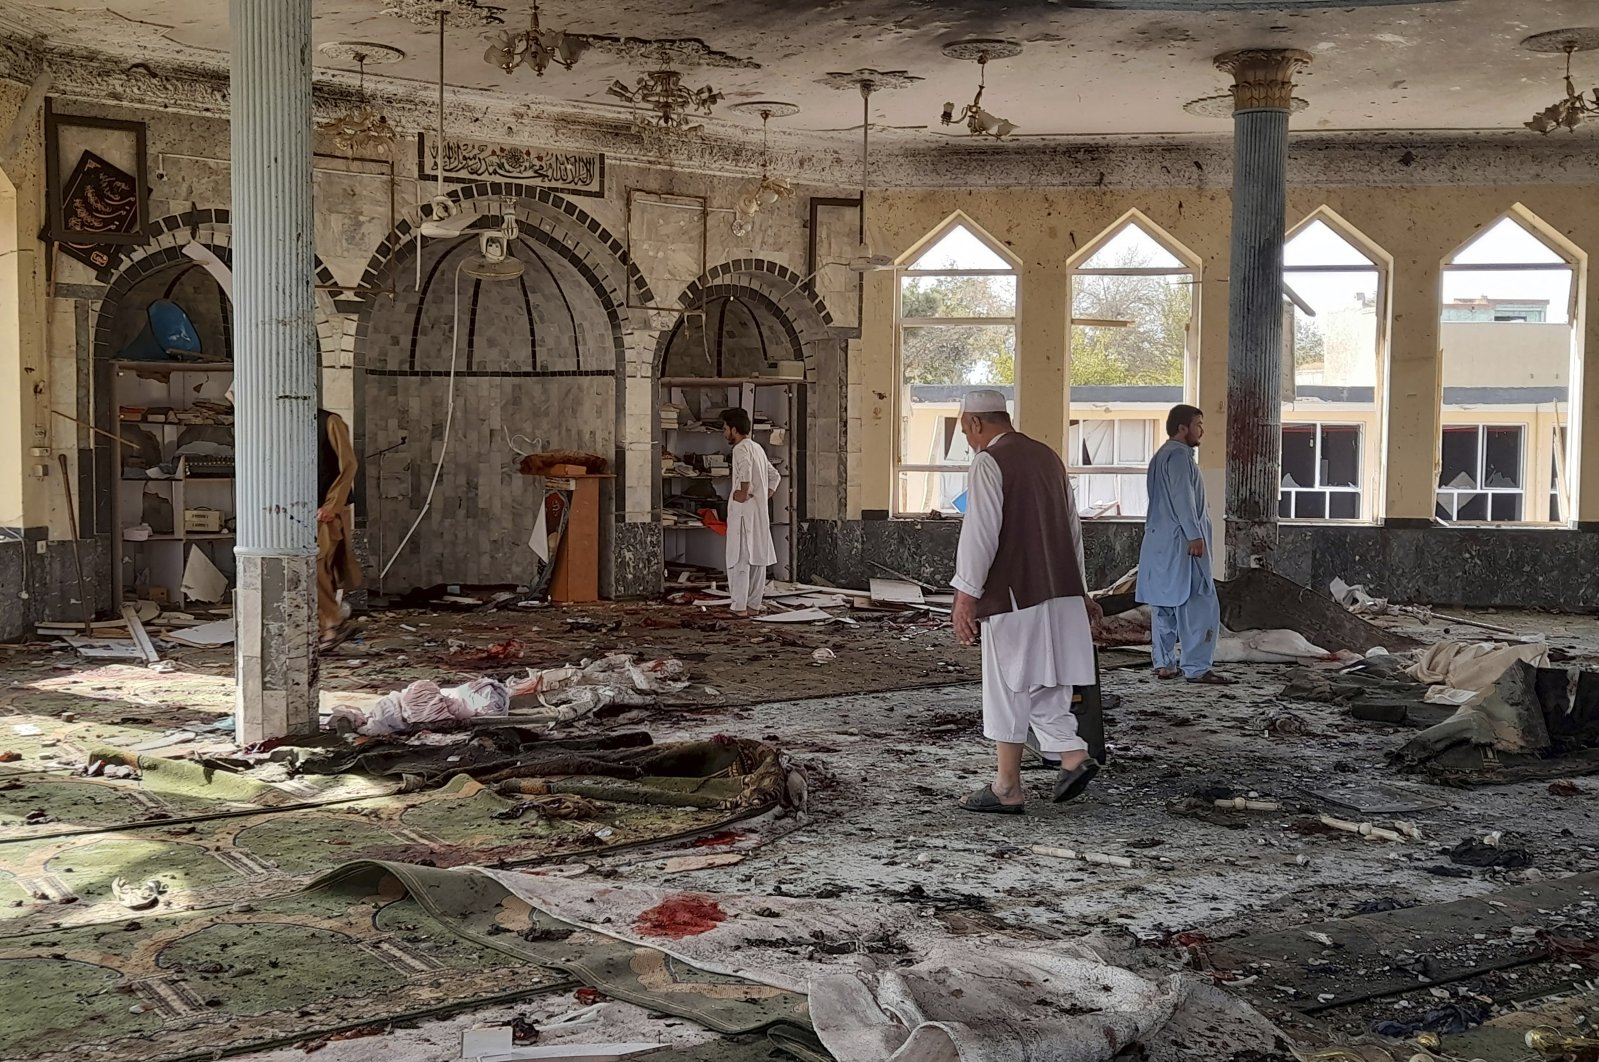 People inspect the inside of a mosque following a bombing in Kunduz province northern Afghanistan, Friday, Oct. 8, 2021. (AP Photo)